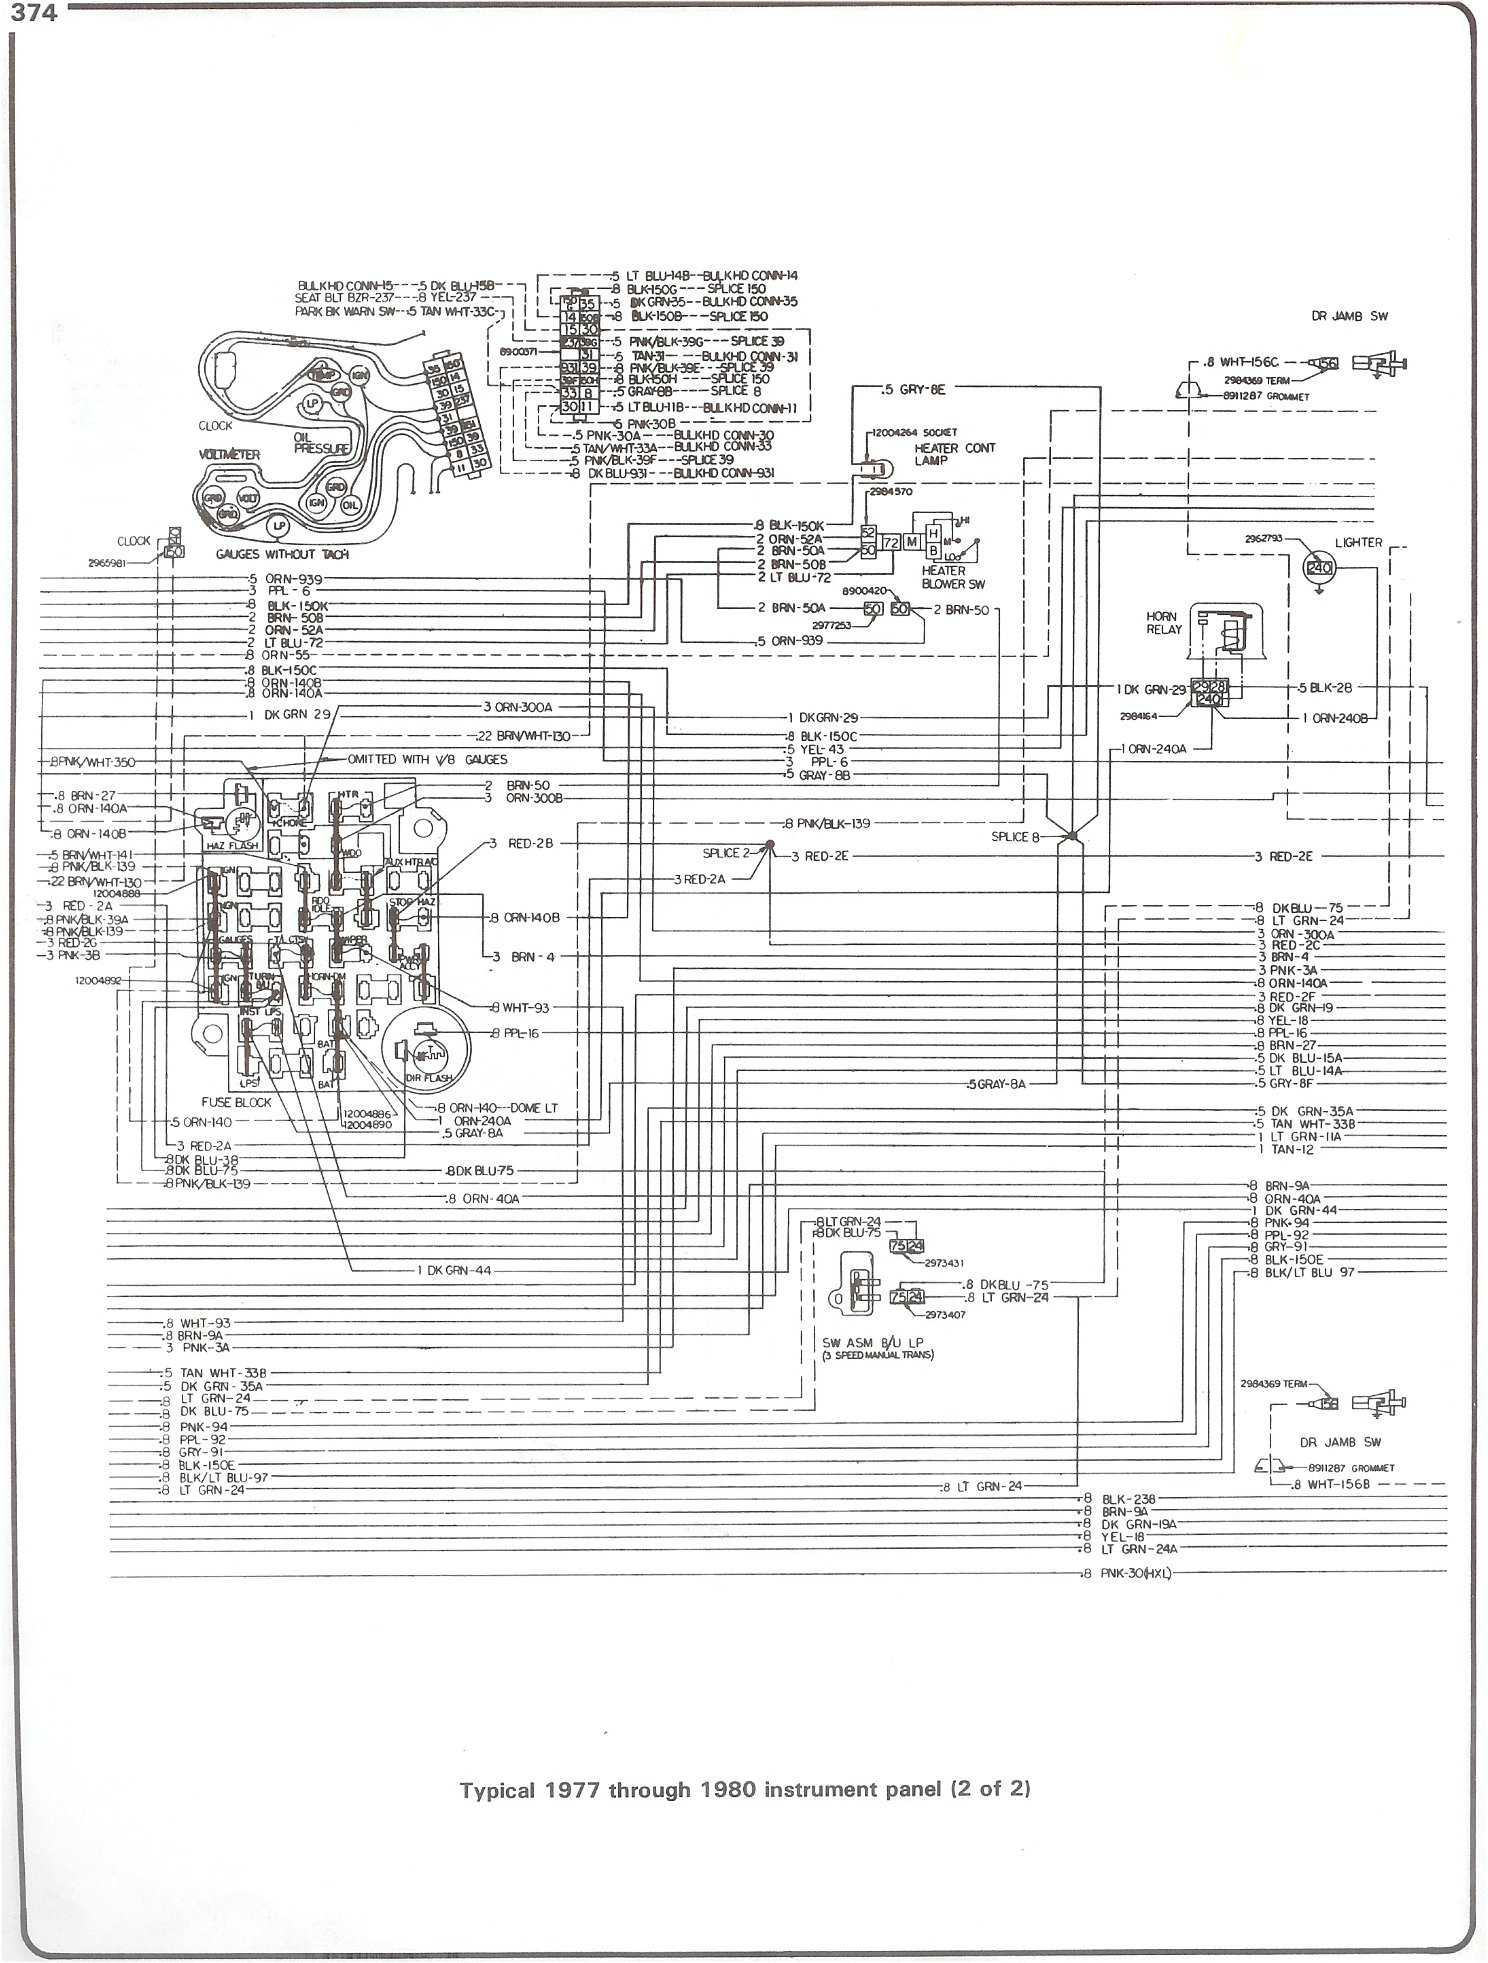 complete 73 87 wiring diagrams rh forum 73 87chevytrucks com Chevrolet Silverado Trailer Wiring Diagram Chevrolet Silverado Trailer Wiring Diagram